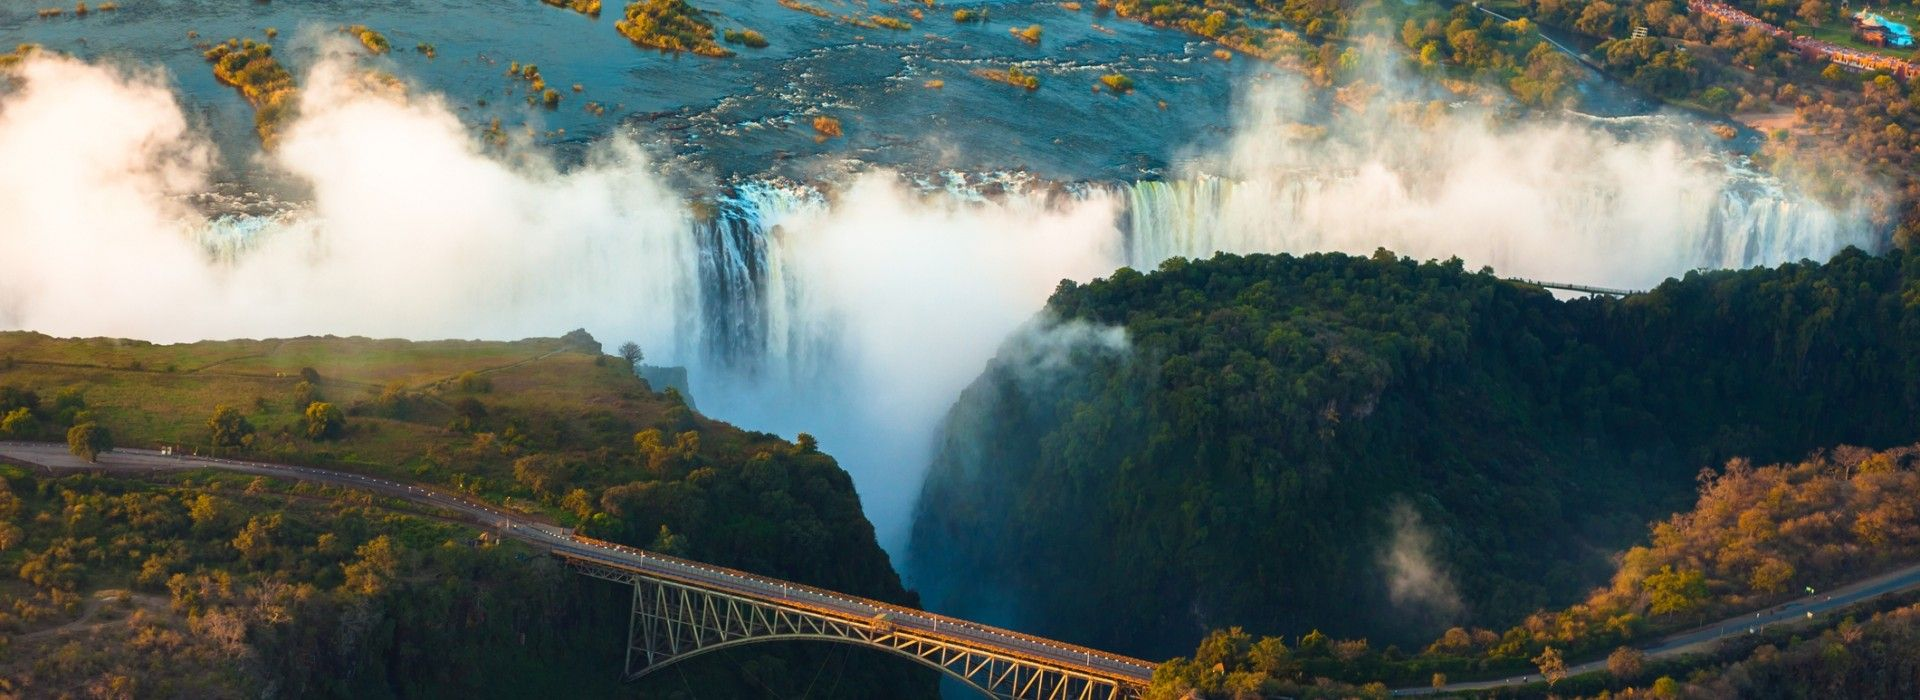 Kayaking and canoeing Tours in Zambia